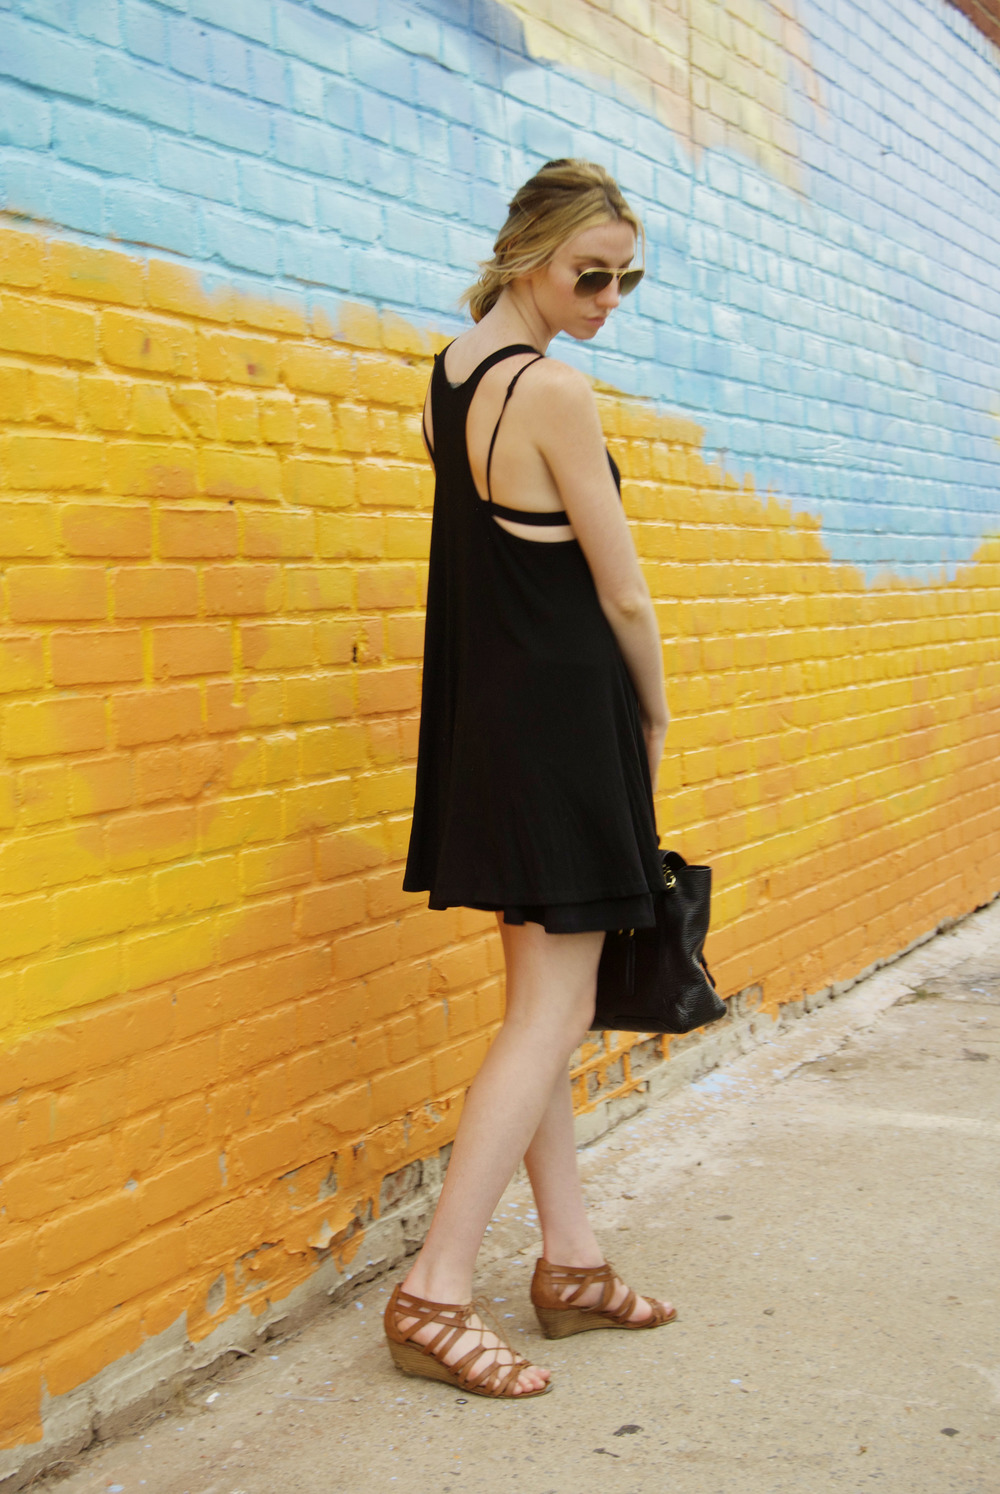 Black Brandy Melville Shift Dress (via Girl x Garment)